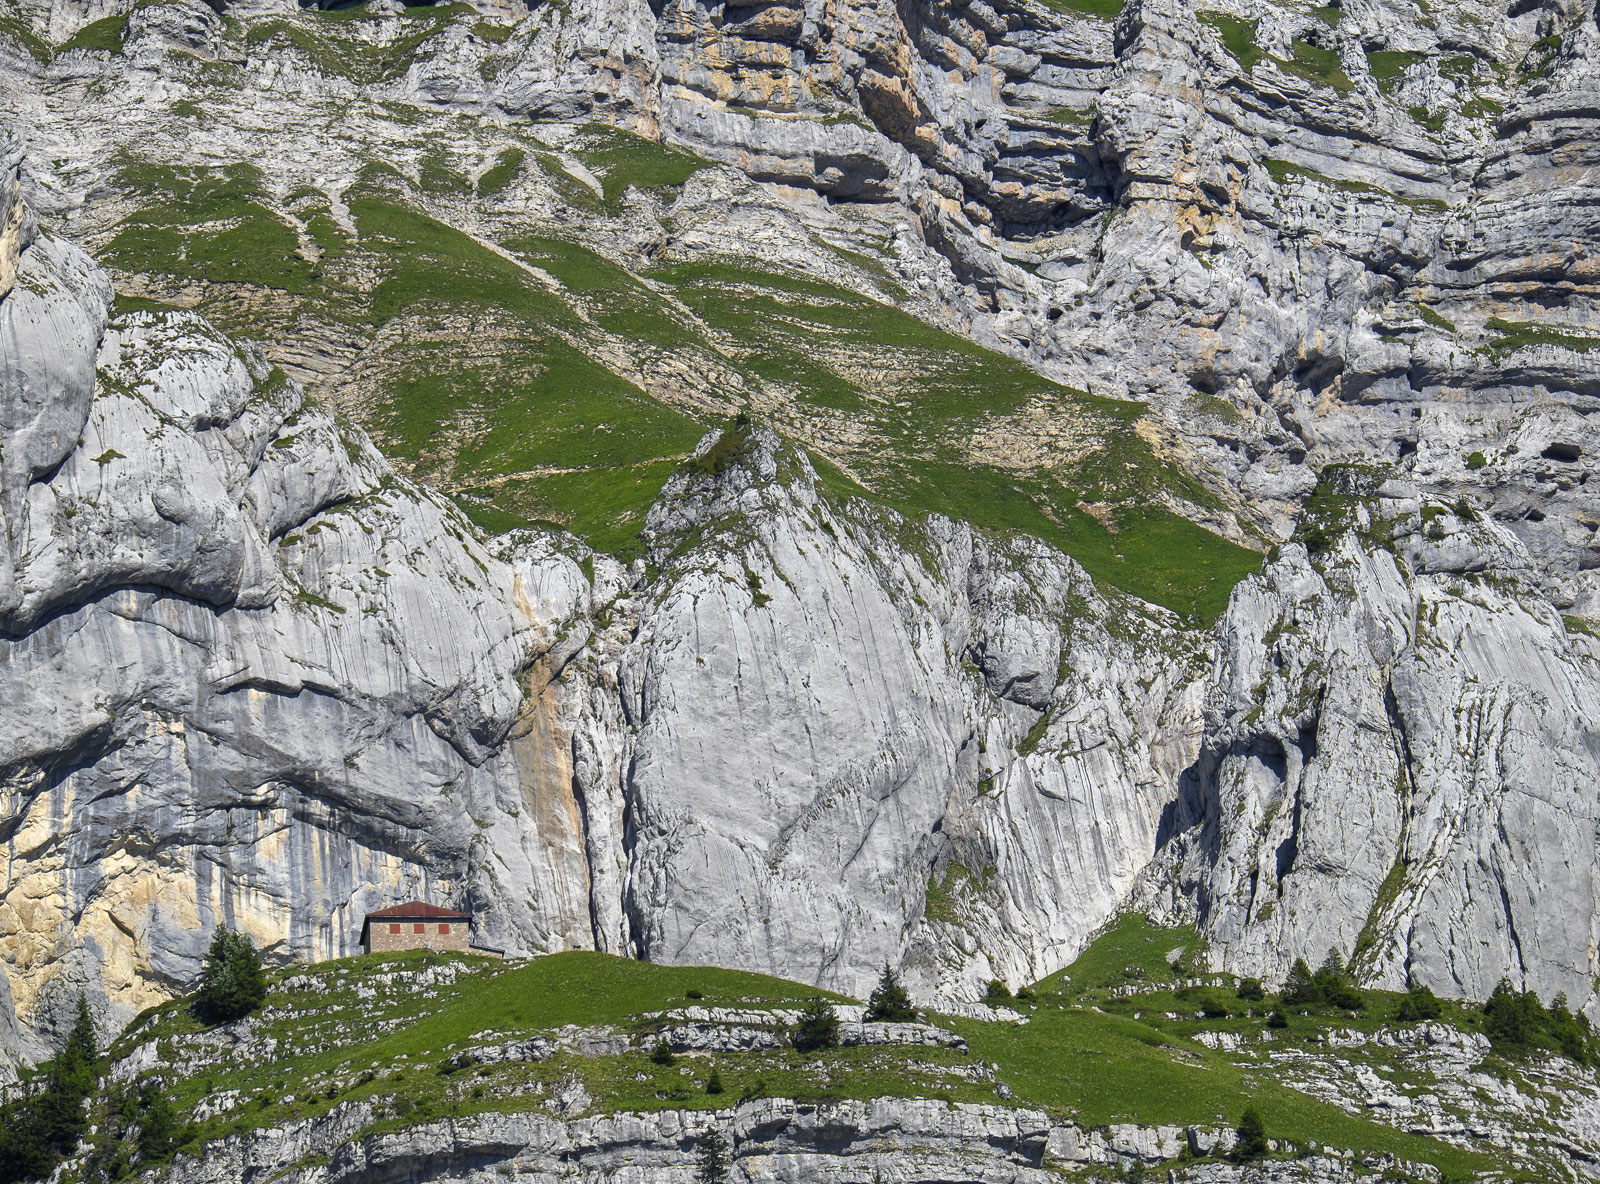 House in the Hill, Annecy, Haute Savoie, France, trail, arduous, summer, limestone, slab, green, grass, trees, station h, photo